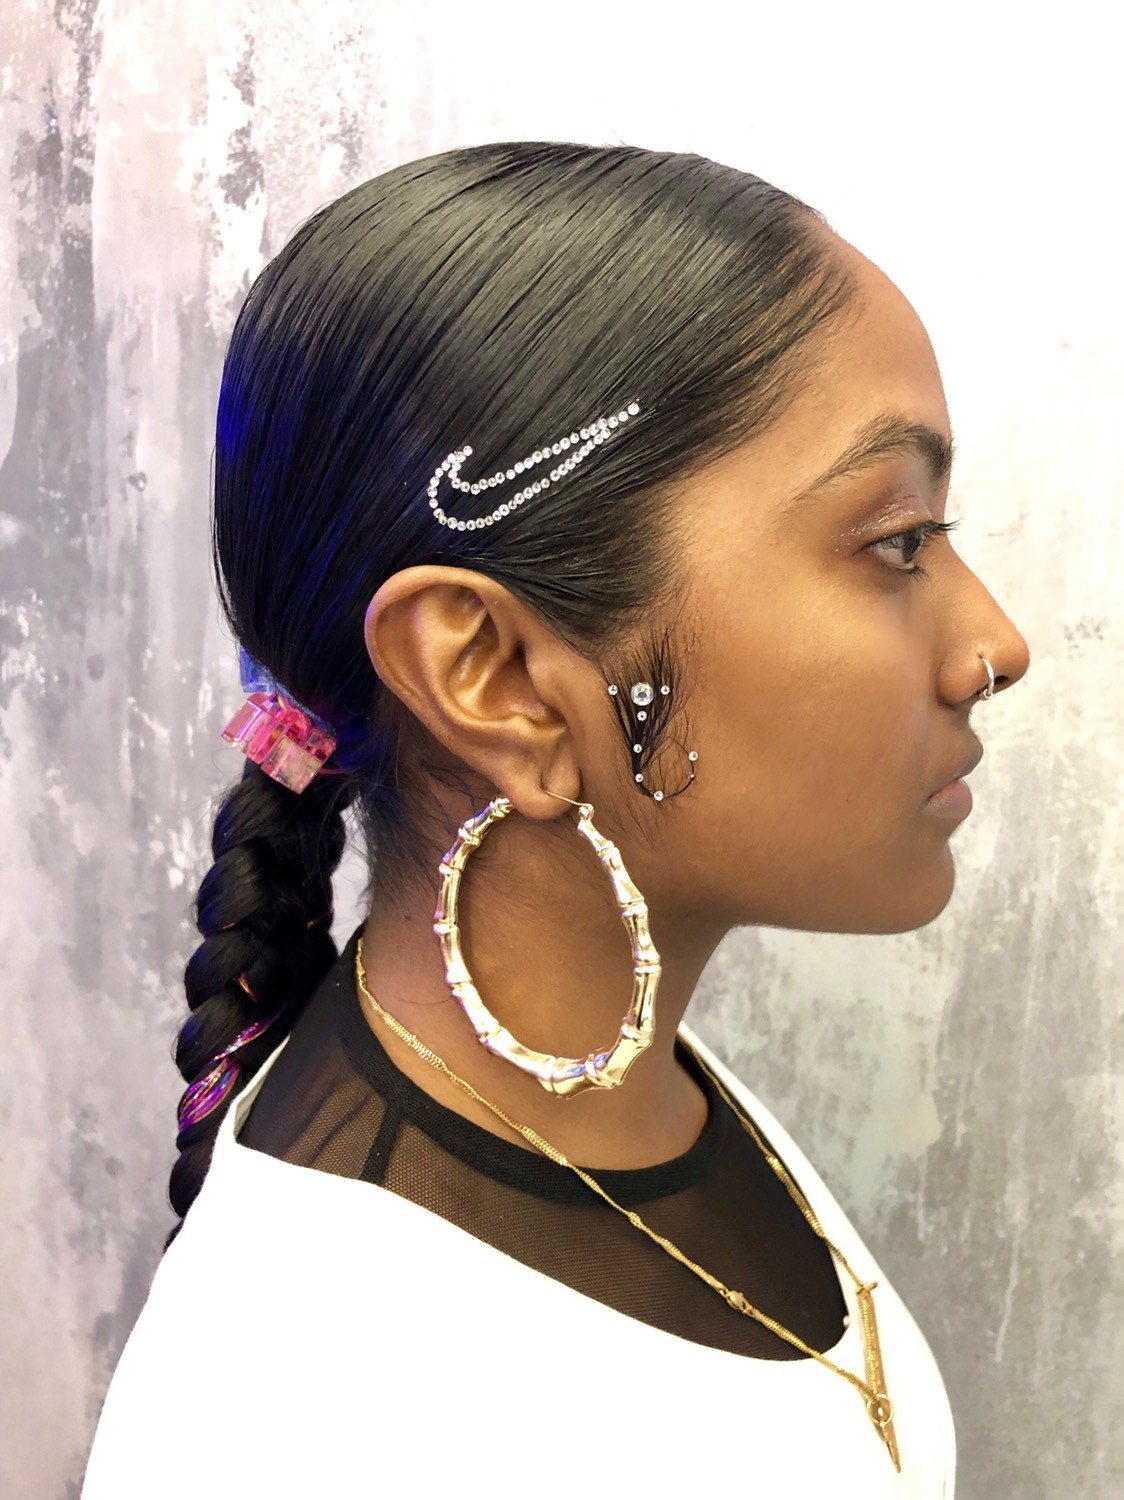 nike keash braids london hair gems